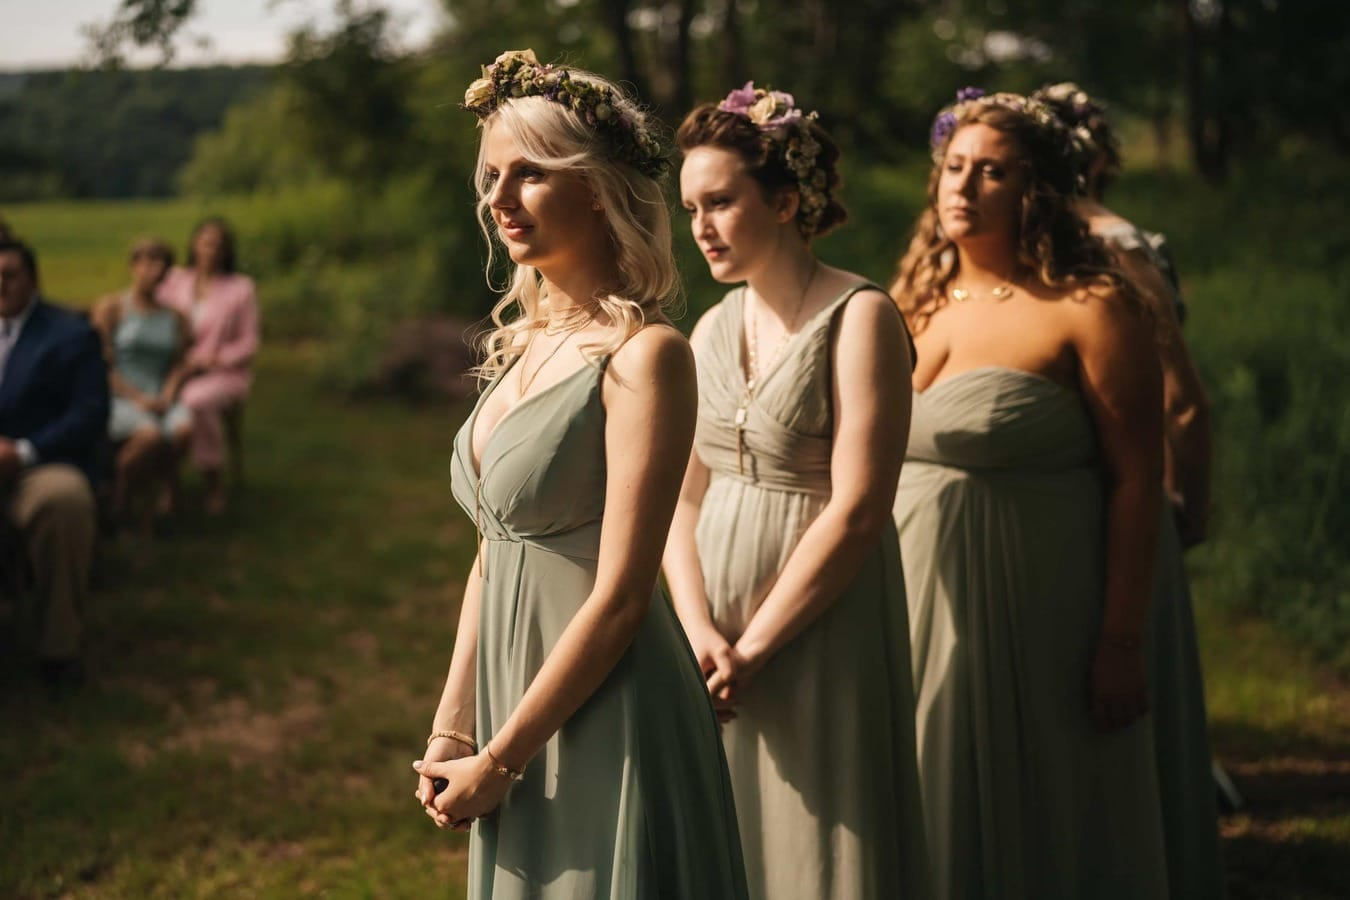 Afternoon light shines on bridesmaids during wedding ceremony in the Catskills.